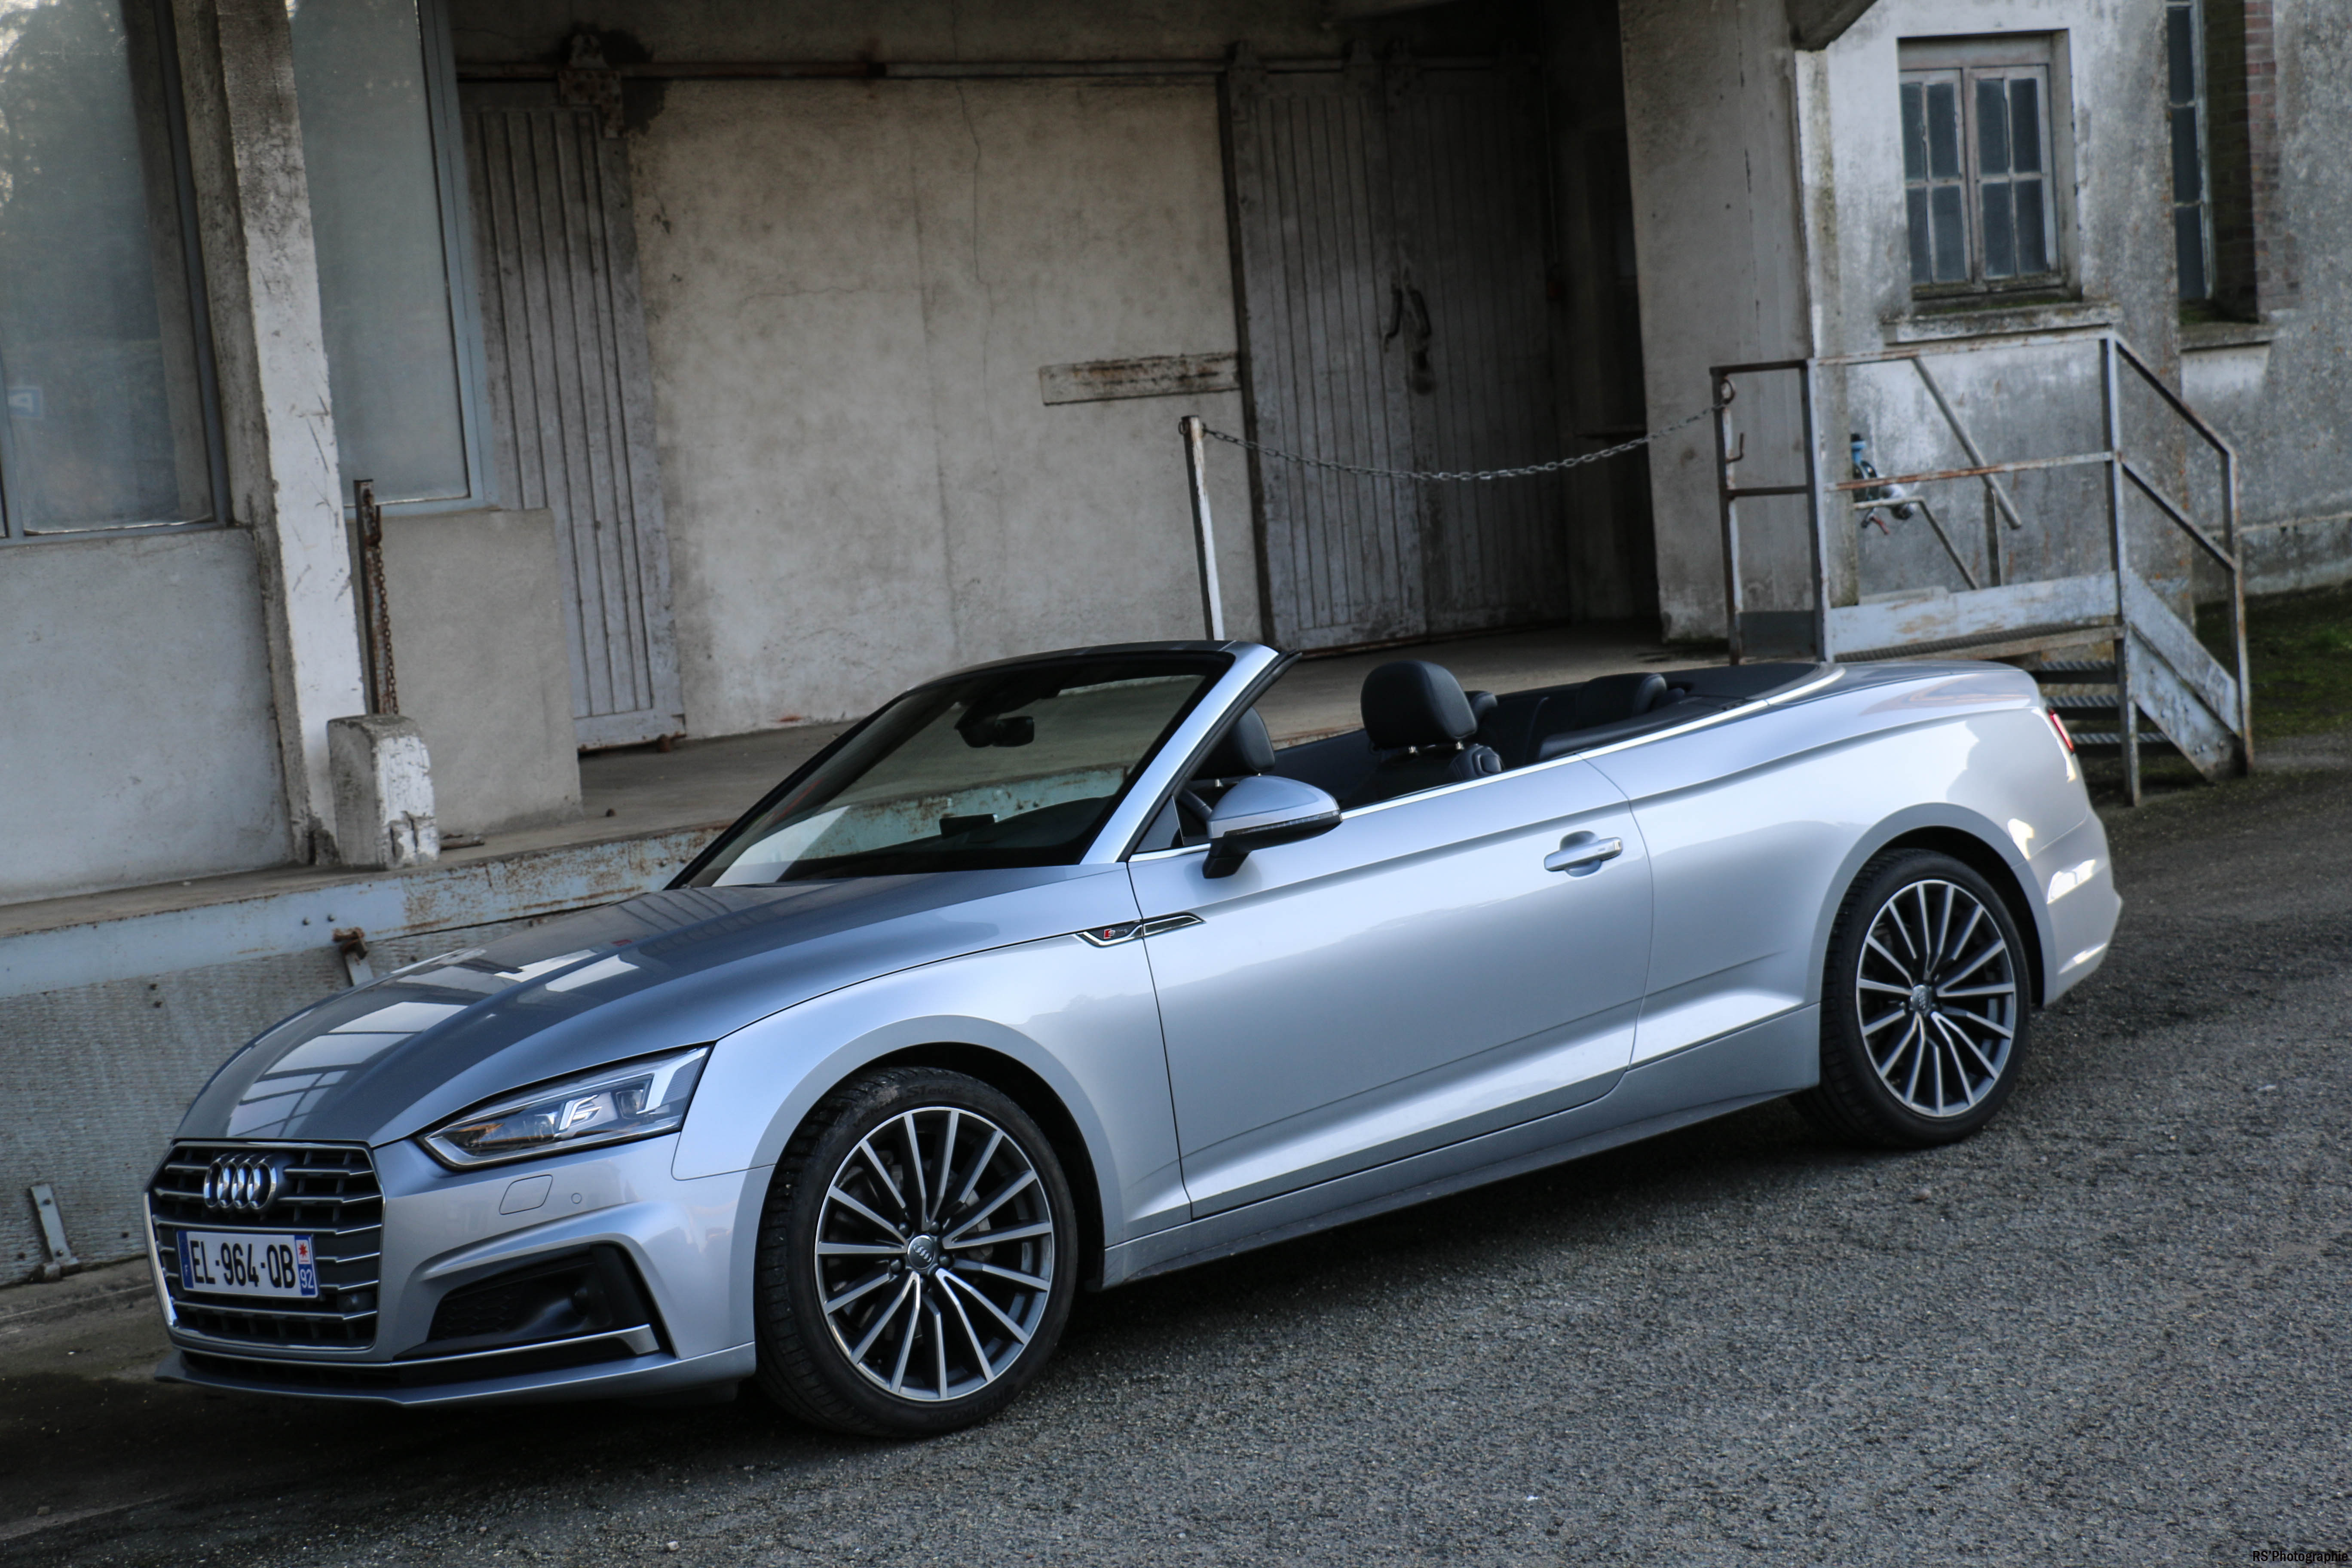 audia5cab36-audi-a5-190-tdi-cabriolet-profil-side-Arnaud Demasier-RSPhotographie